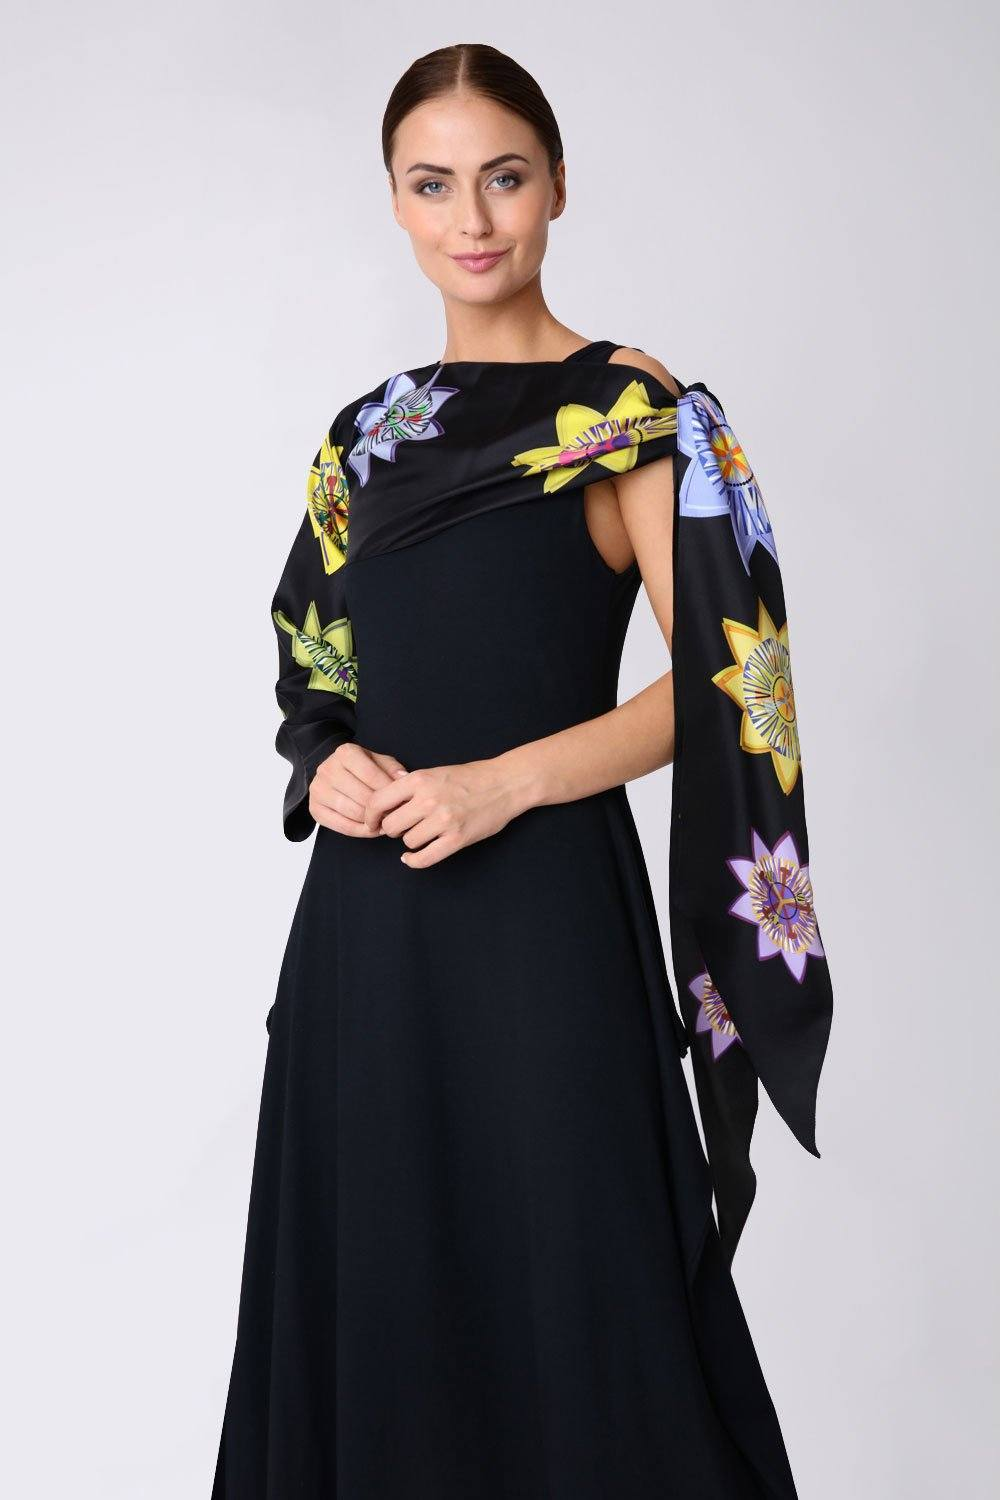 Passion Floral Silk Sleeved Scarf - Bianca Elgar